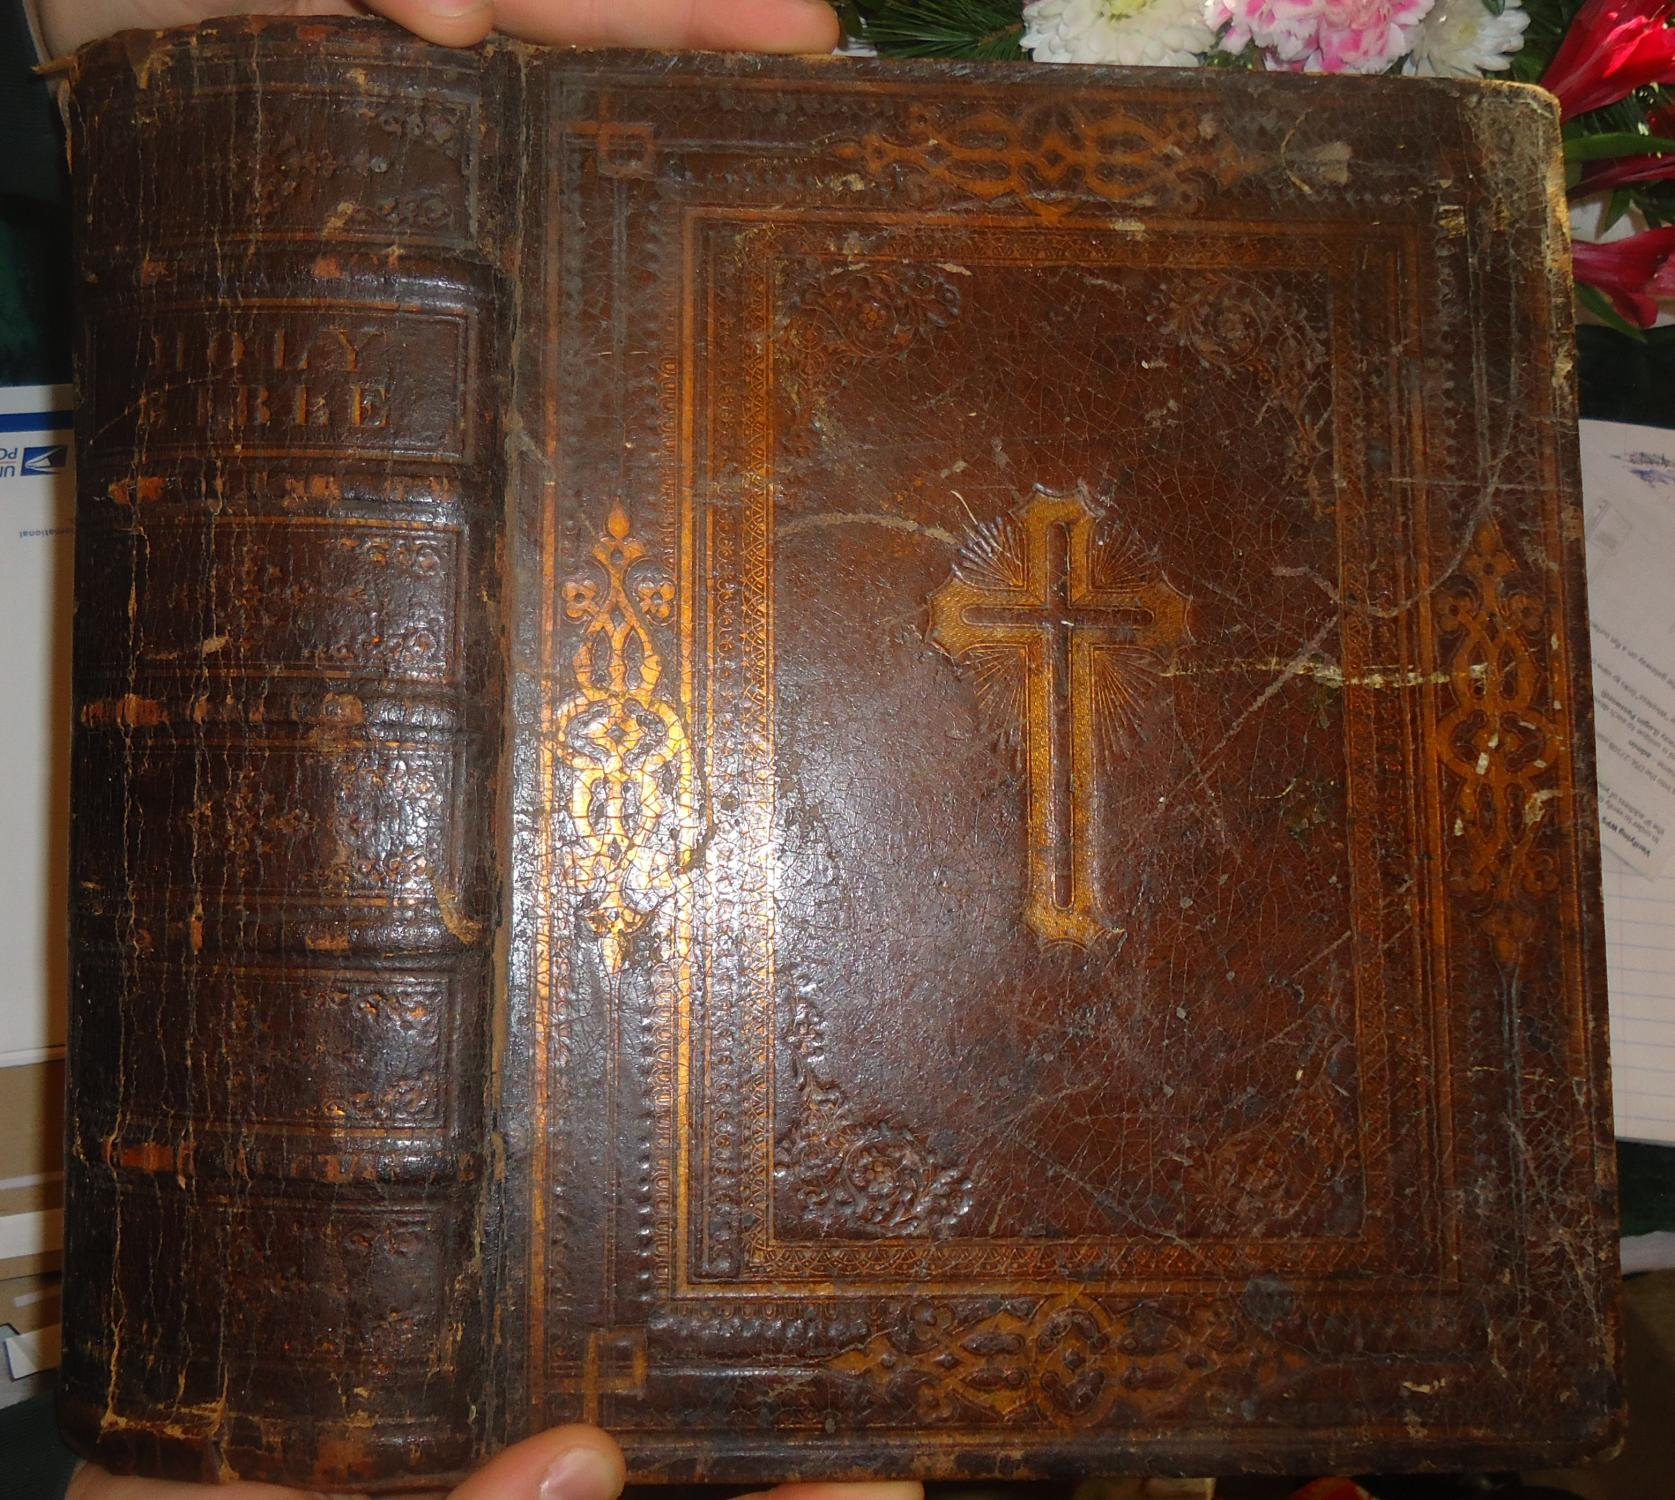 Holy Bible, / Translated from / The Latin Vulgate: / Diligently Compared with / the Hebrew, Greek, ...